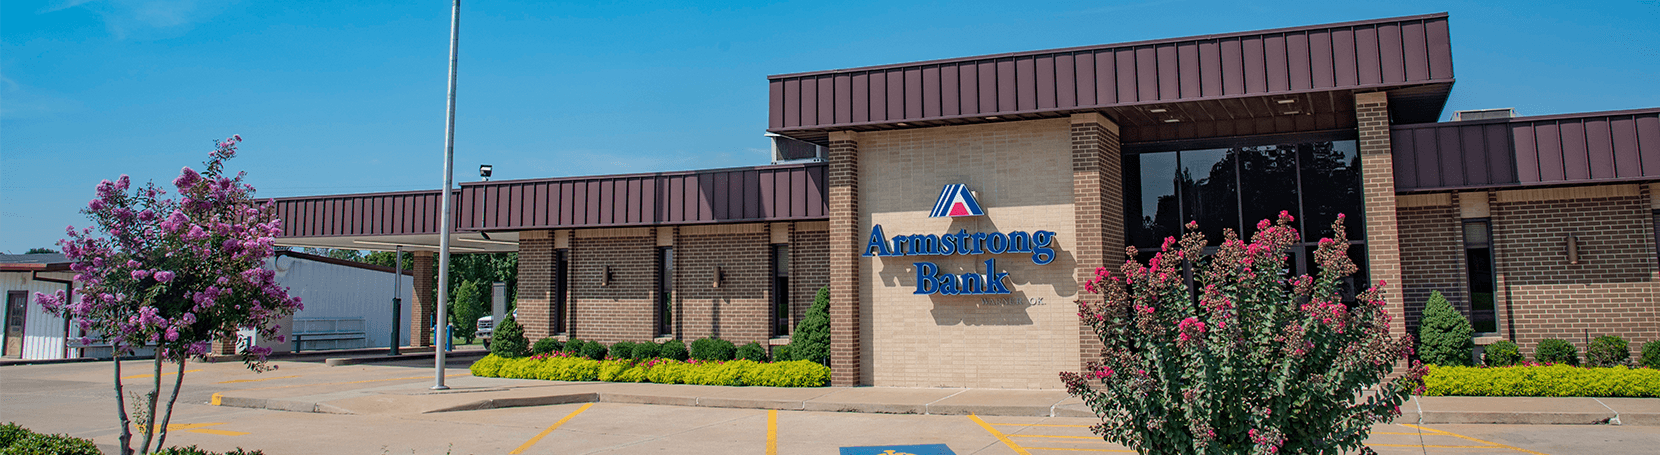 Armstrong Bank building in Warner, Oklahoma